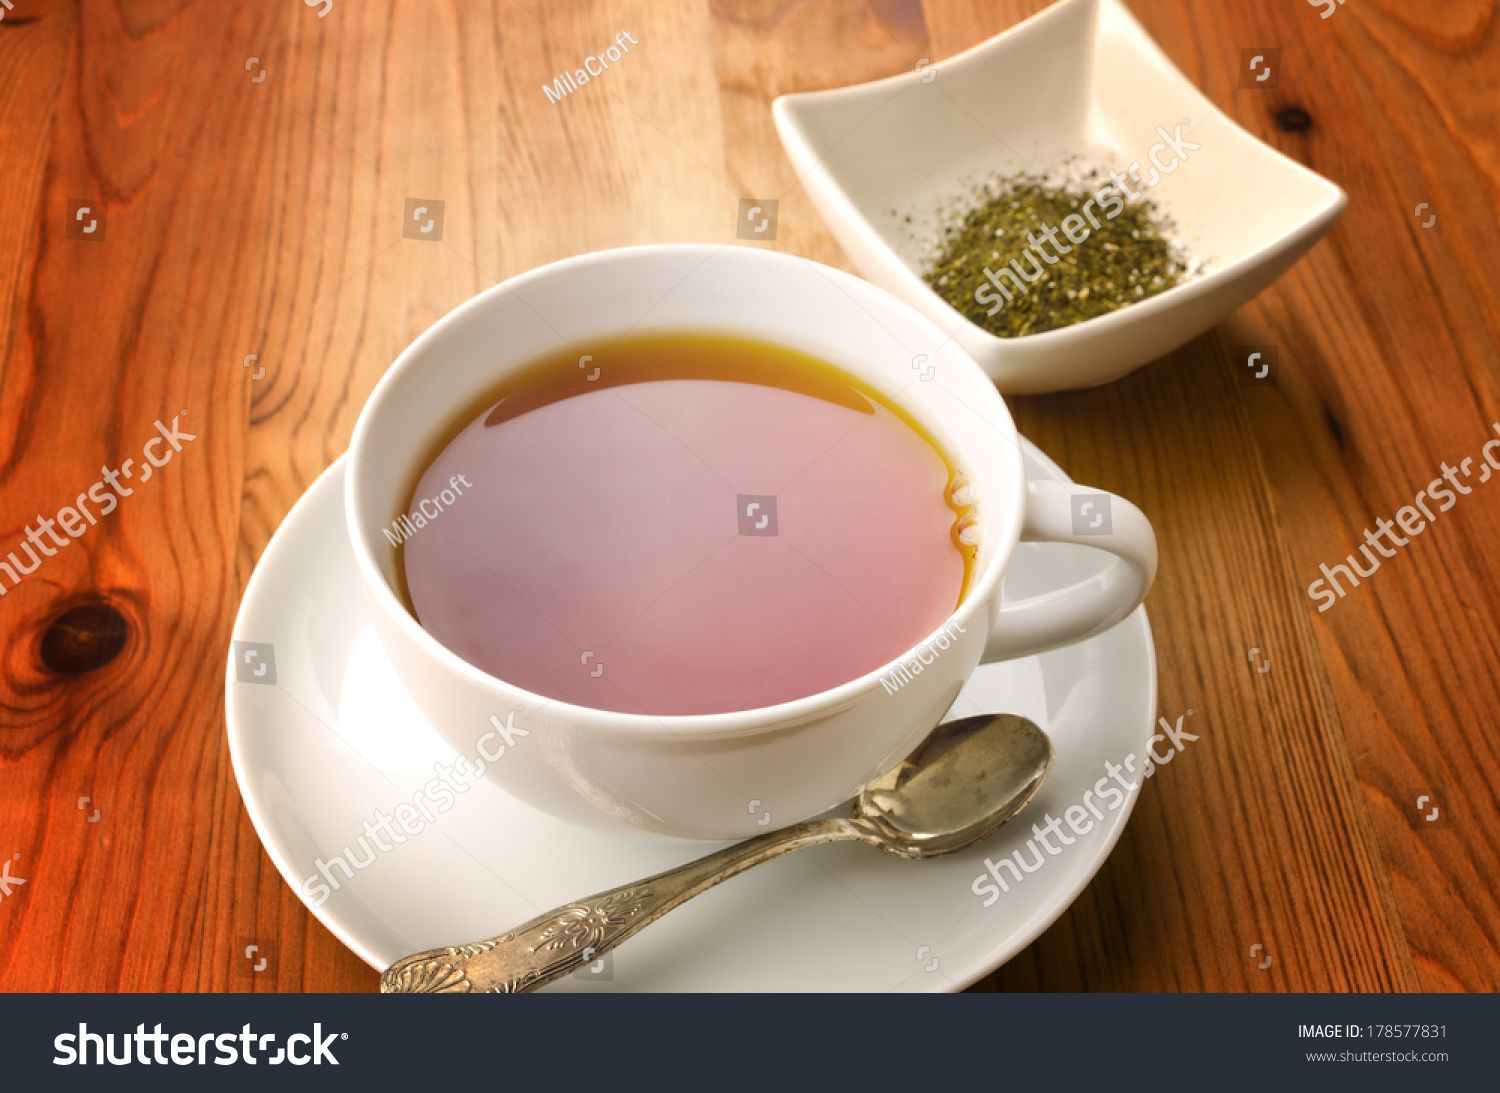 Cup Of Tea Images Free